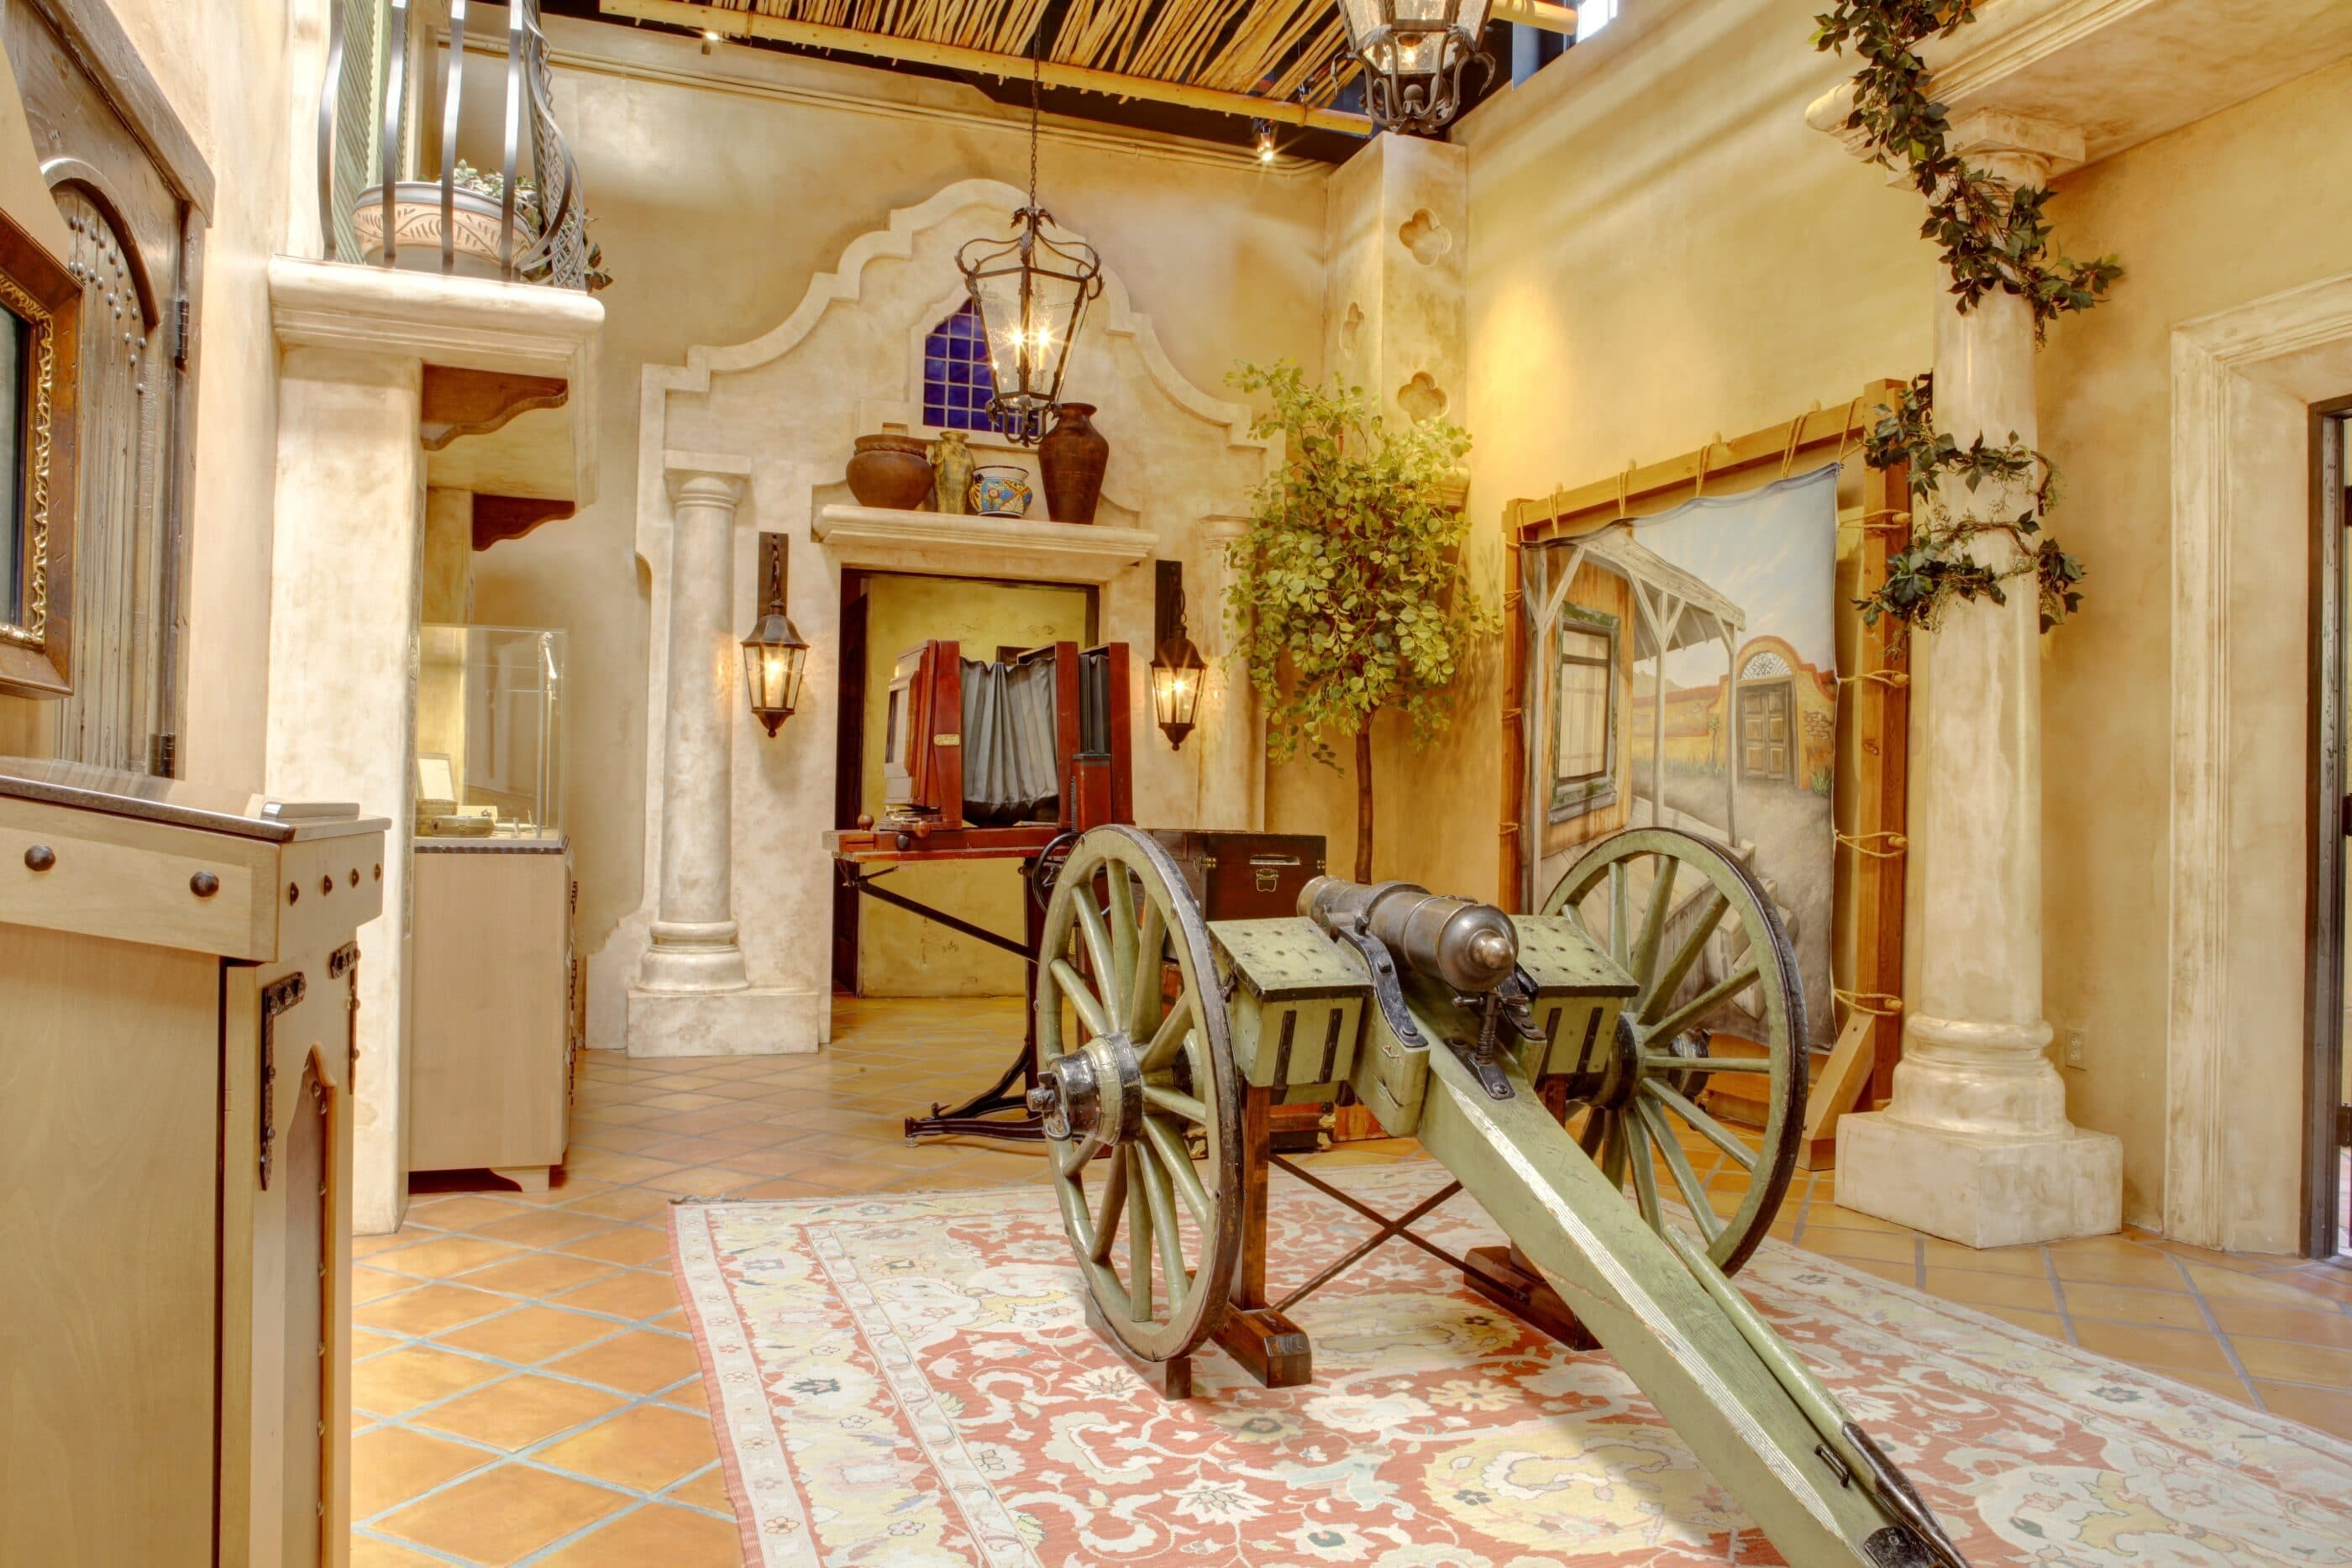 A canon inside the Mormon Battalion historic site in Old Town San Diego.